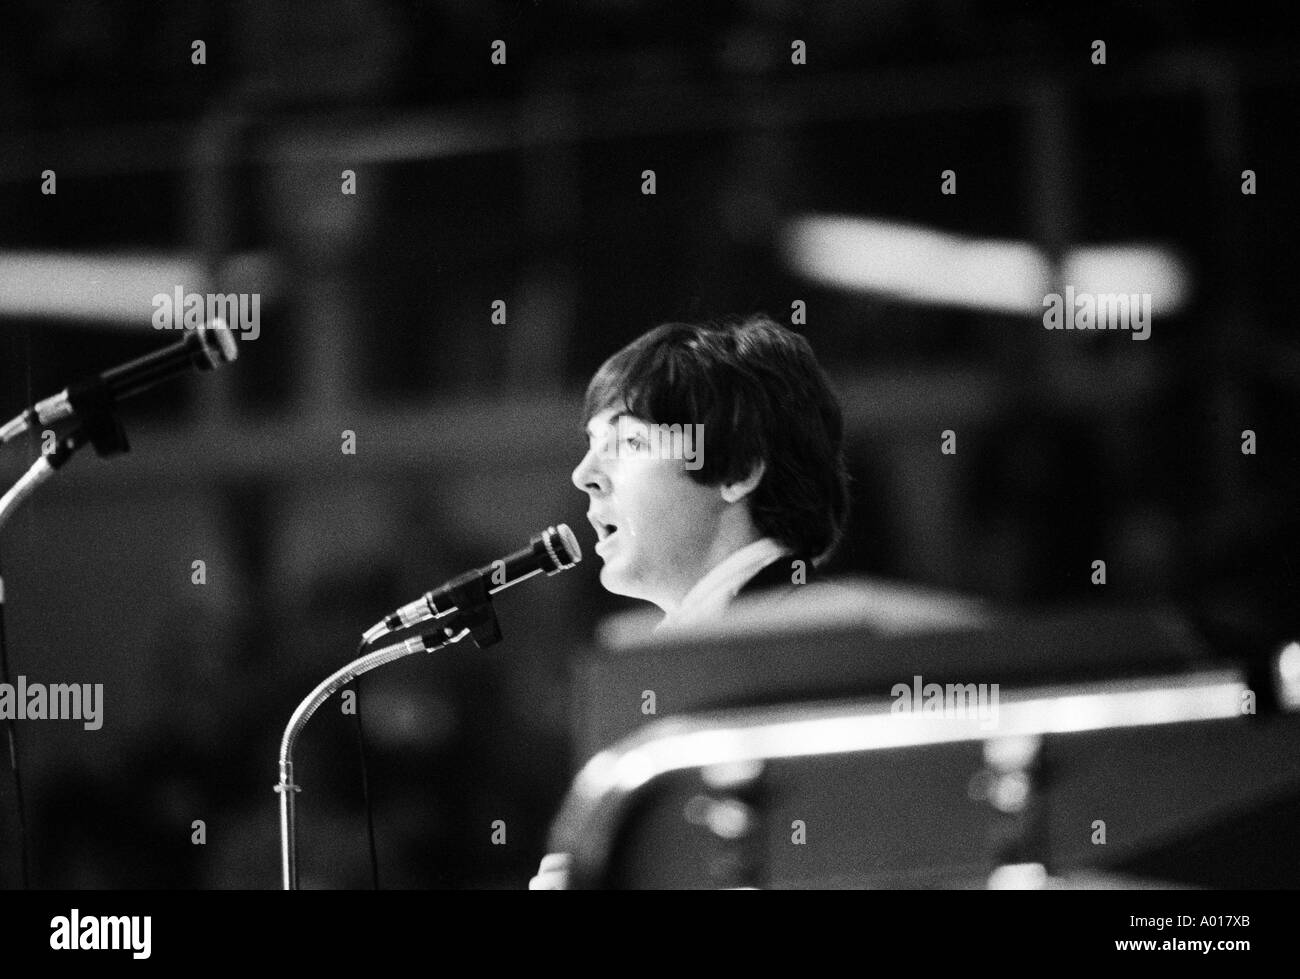 The Beatles, concert in Essen, Ruhr area, Gruga Hall, 1966, 1960s, the sixties, England, London, Great Britain, British pop band, music, musician, group, pop music, singers, Paul McCartney, b&w, black and white, black & white photography - Stock Image